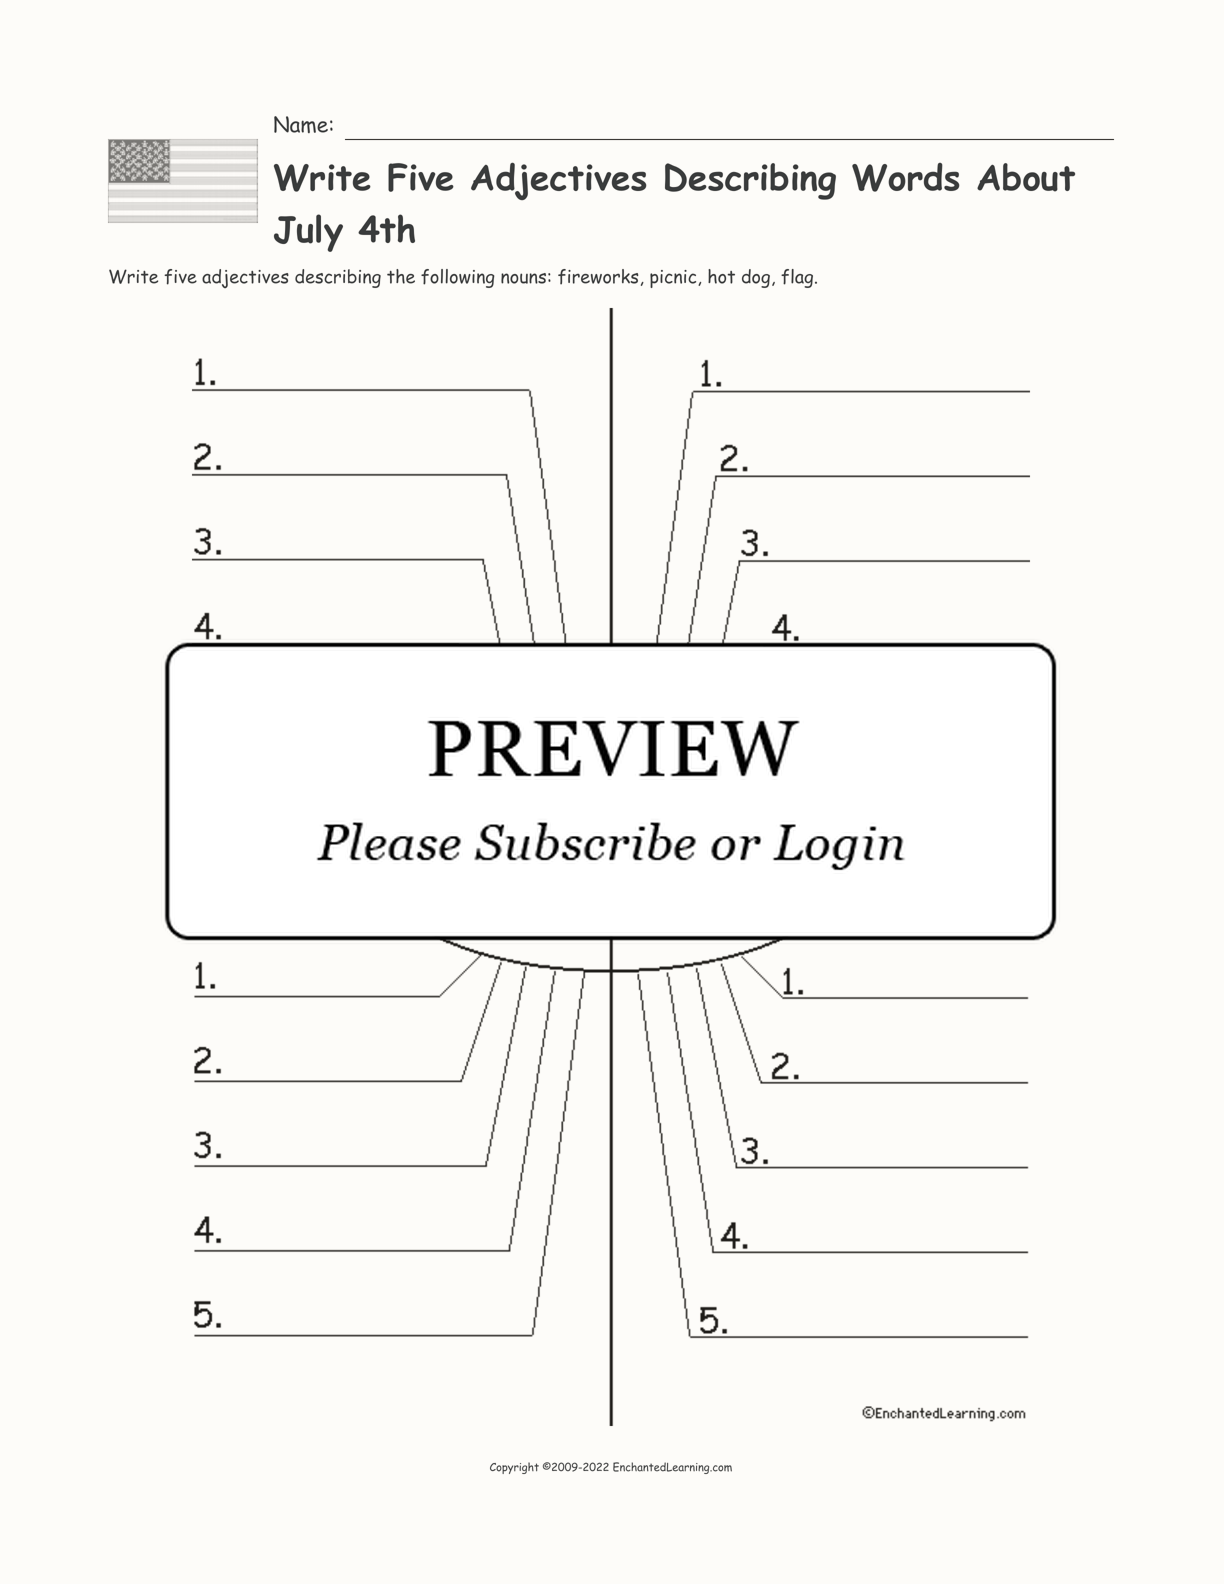 Write Five Adjectives Describing Words About July 4th interactive printout page 1